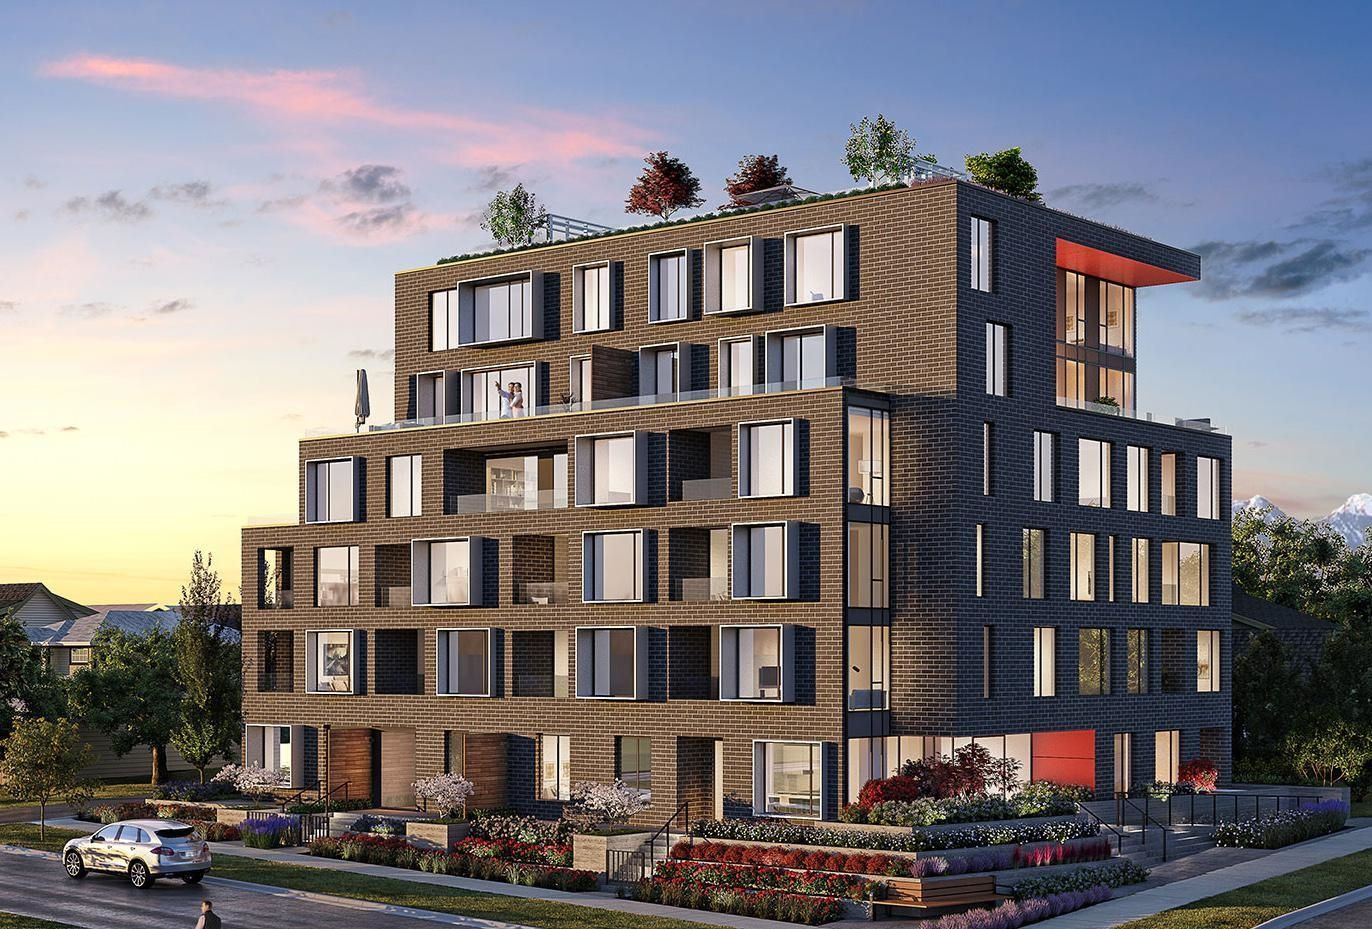 """Main Photo: 301 7777 CAMBIE Street in Vancouver: Marpole Condo for sale in """"SOMA"""" (Vancouver West)  : MLS®# R2616013"""